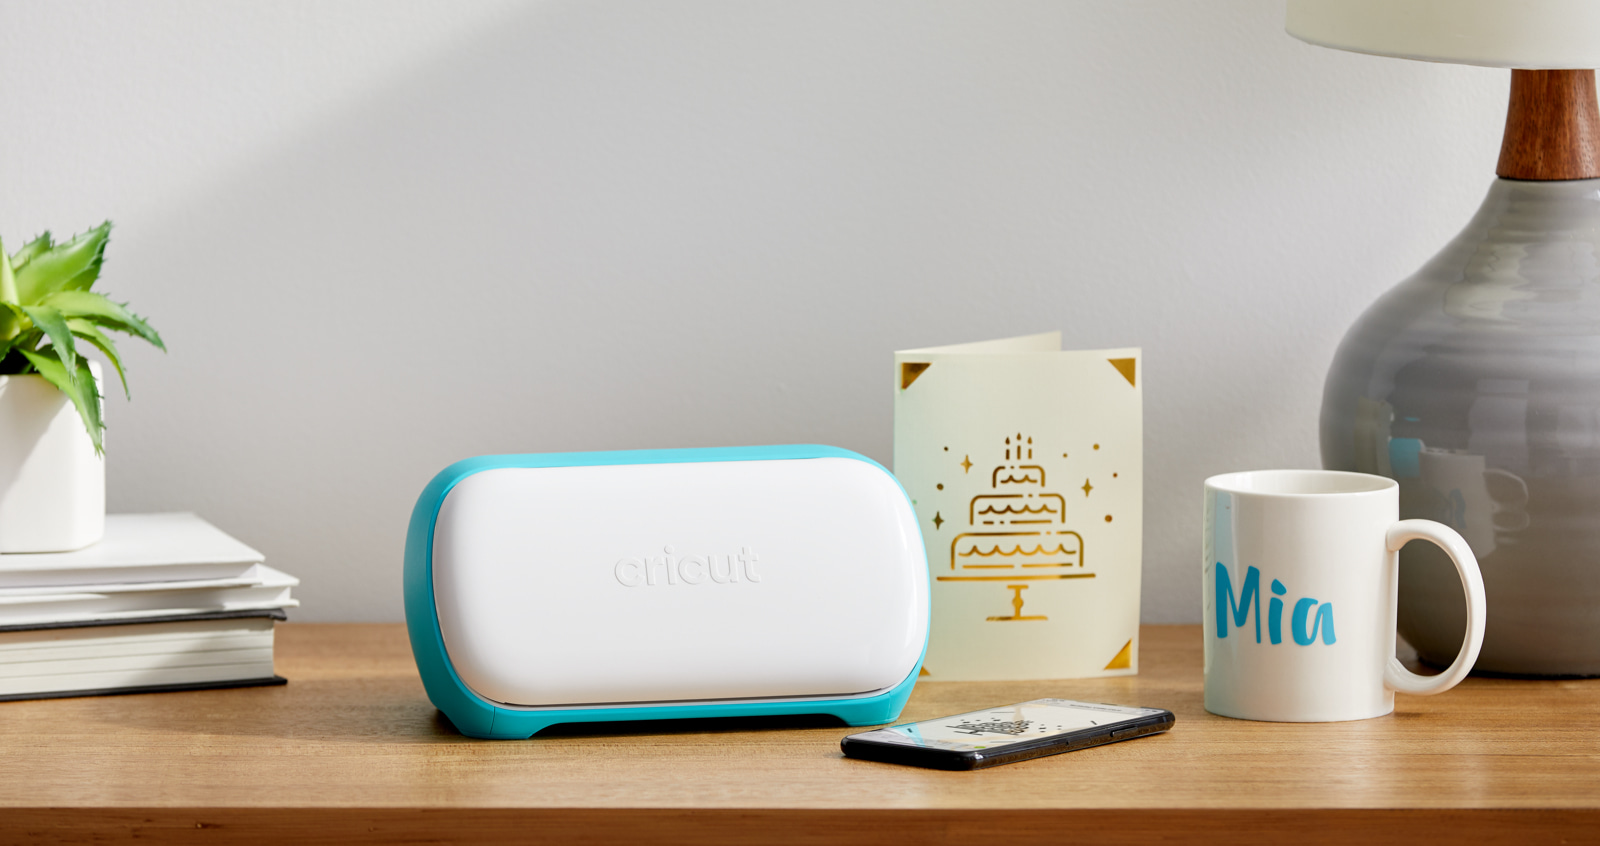 Cricut Joy with Projects